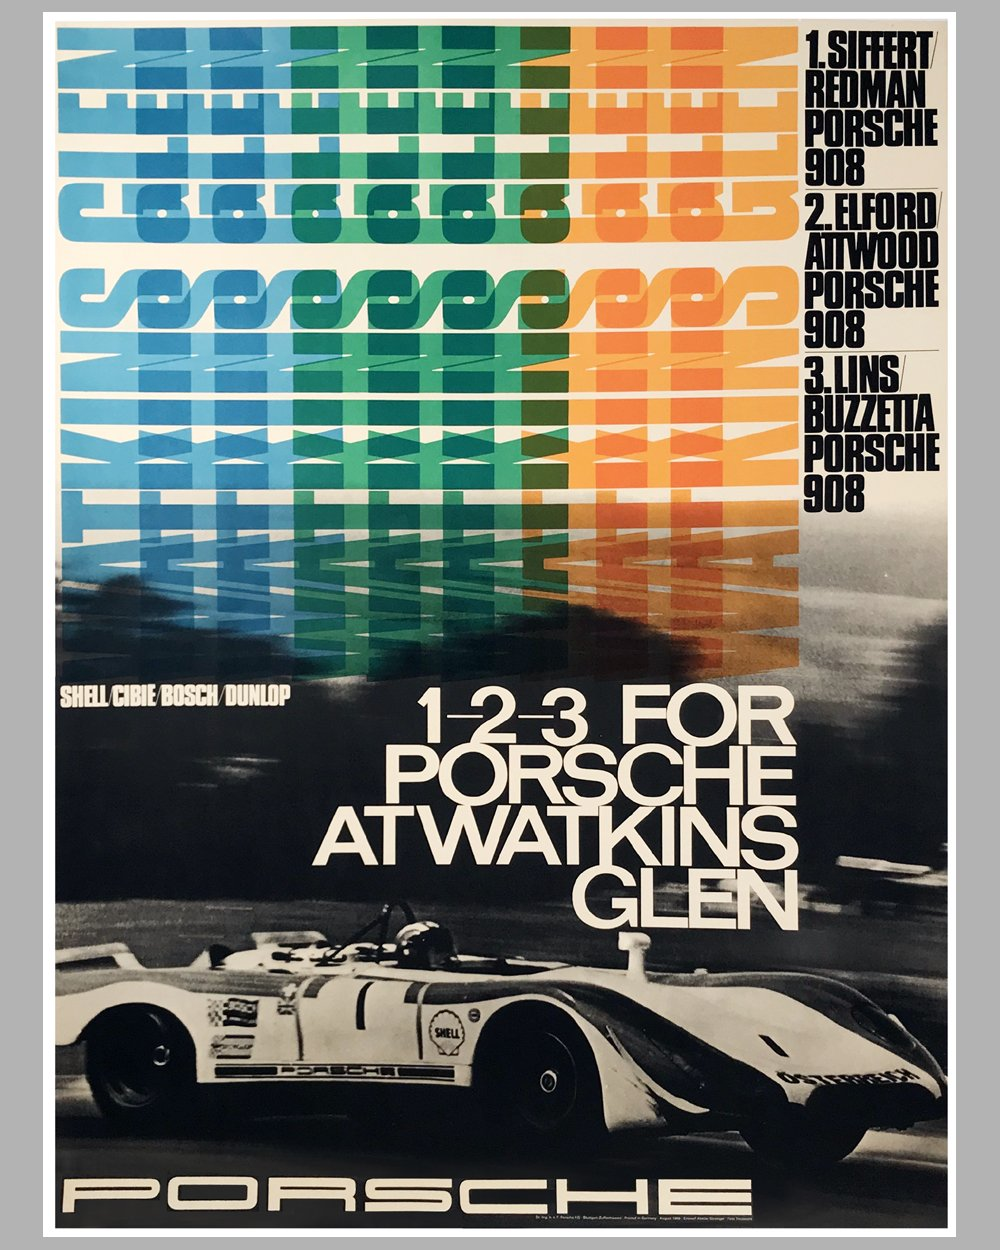 1969 - Six Hours of Watkins Glen Porsche factory victory poster